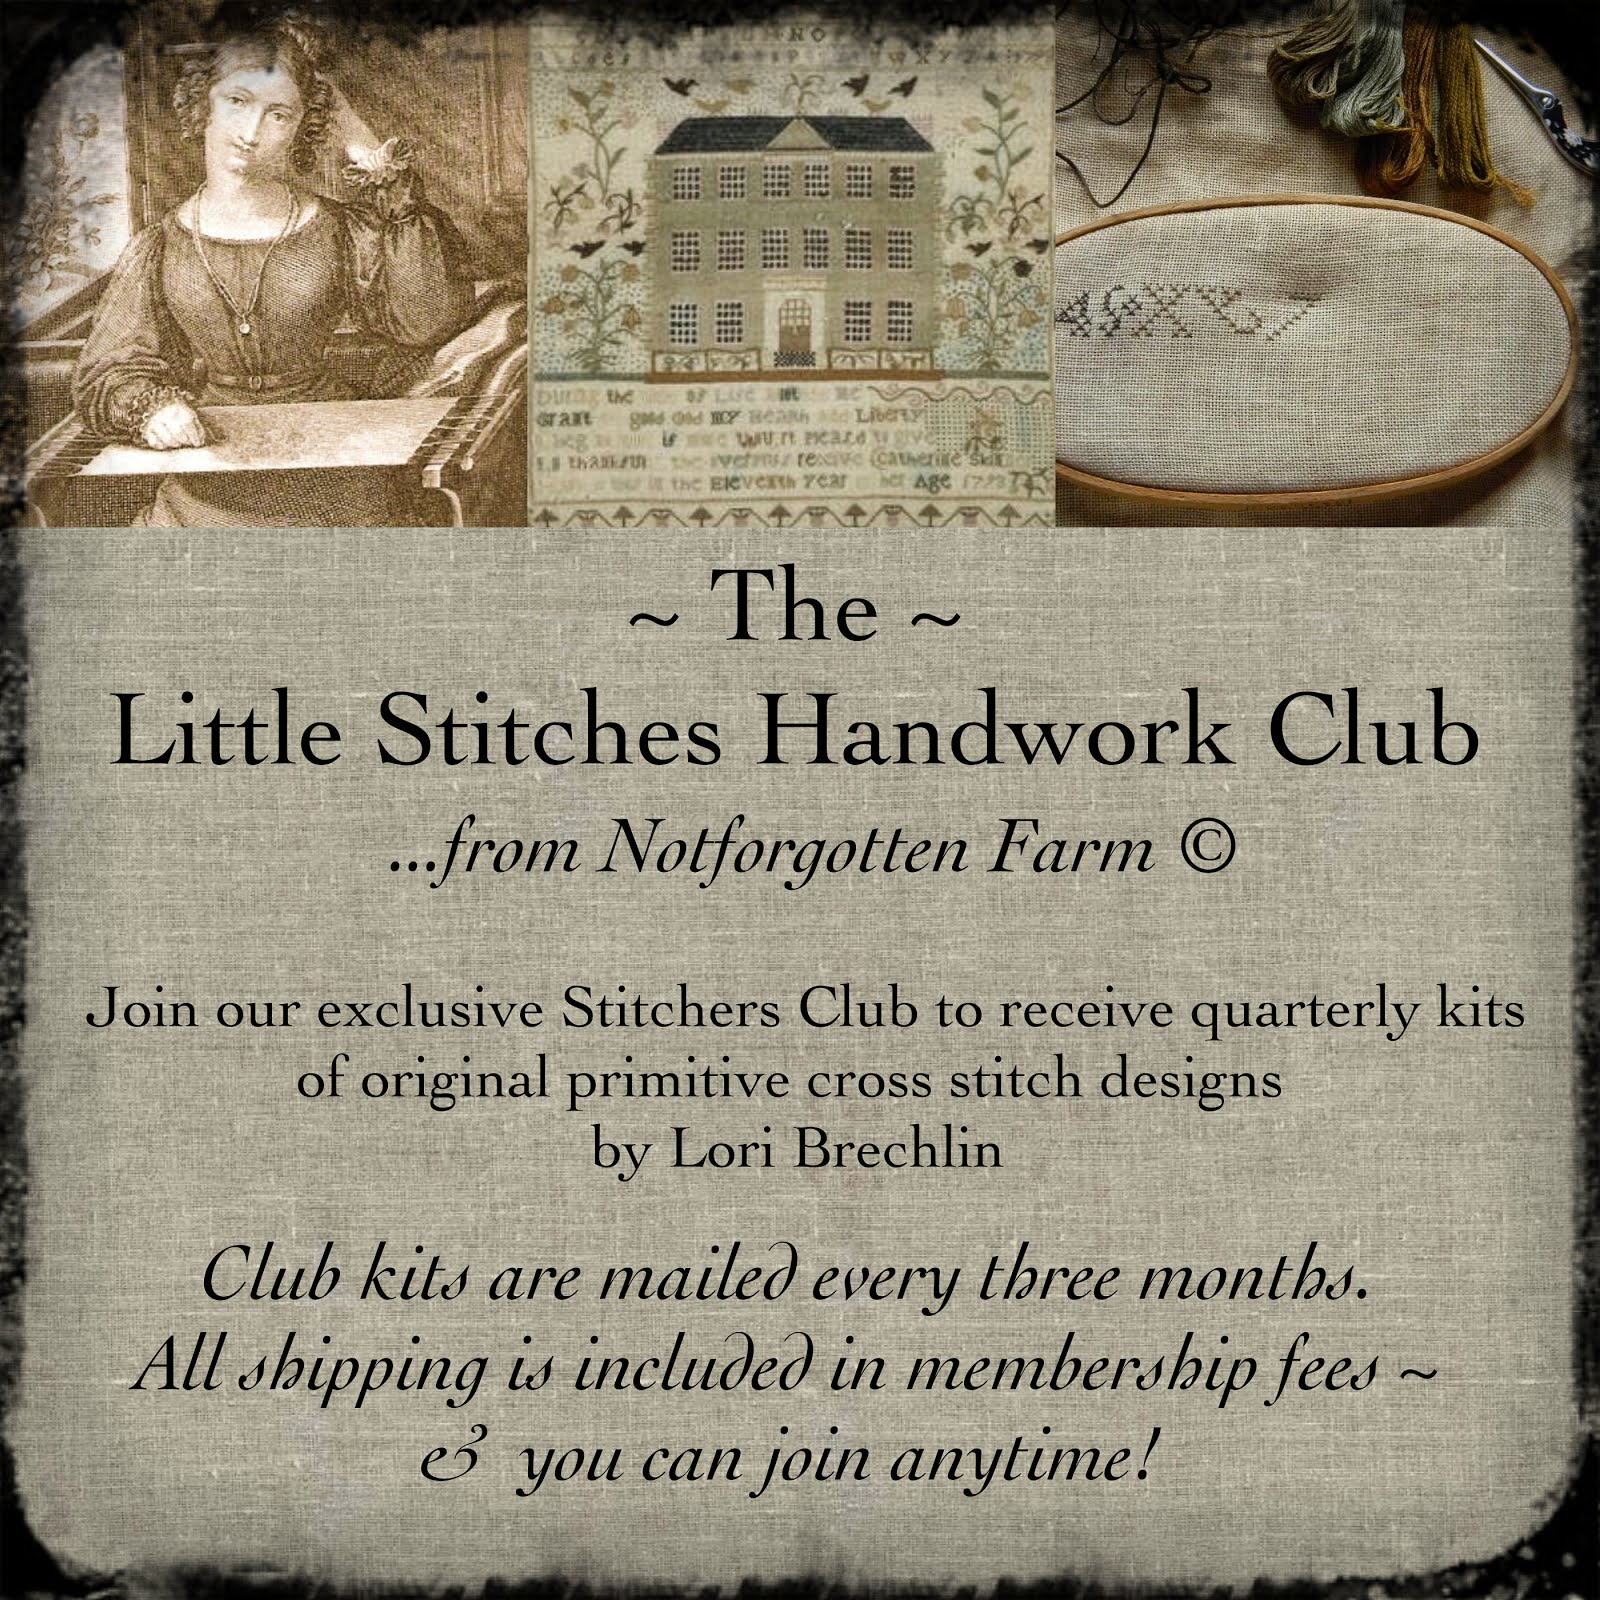 The Little Stitches Handwork Club ~ from Notforgotten Farm